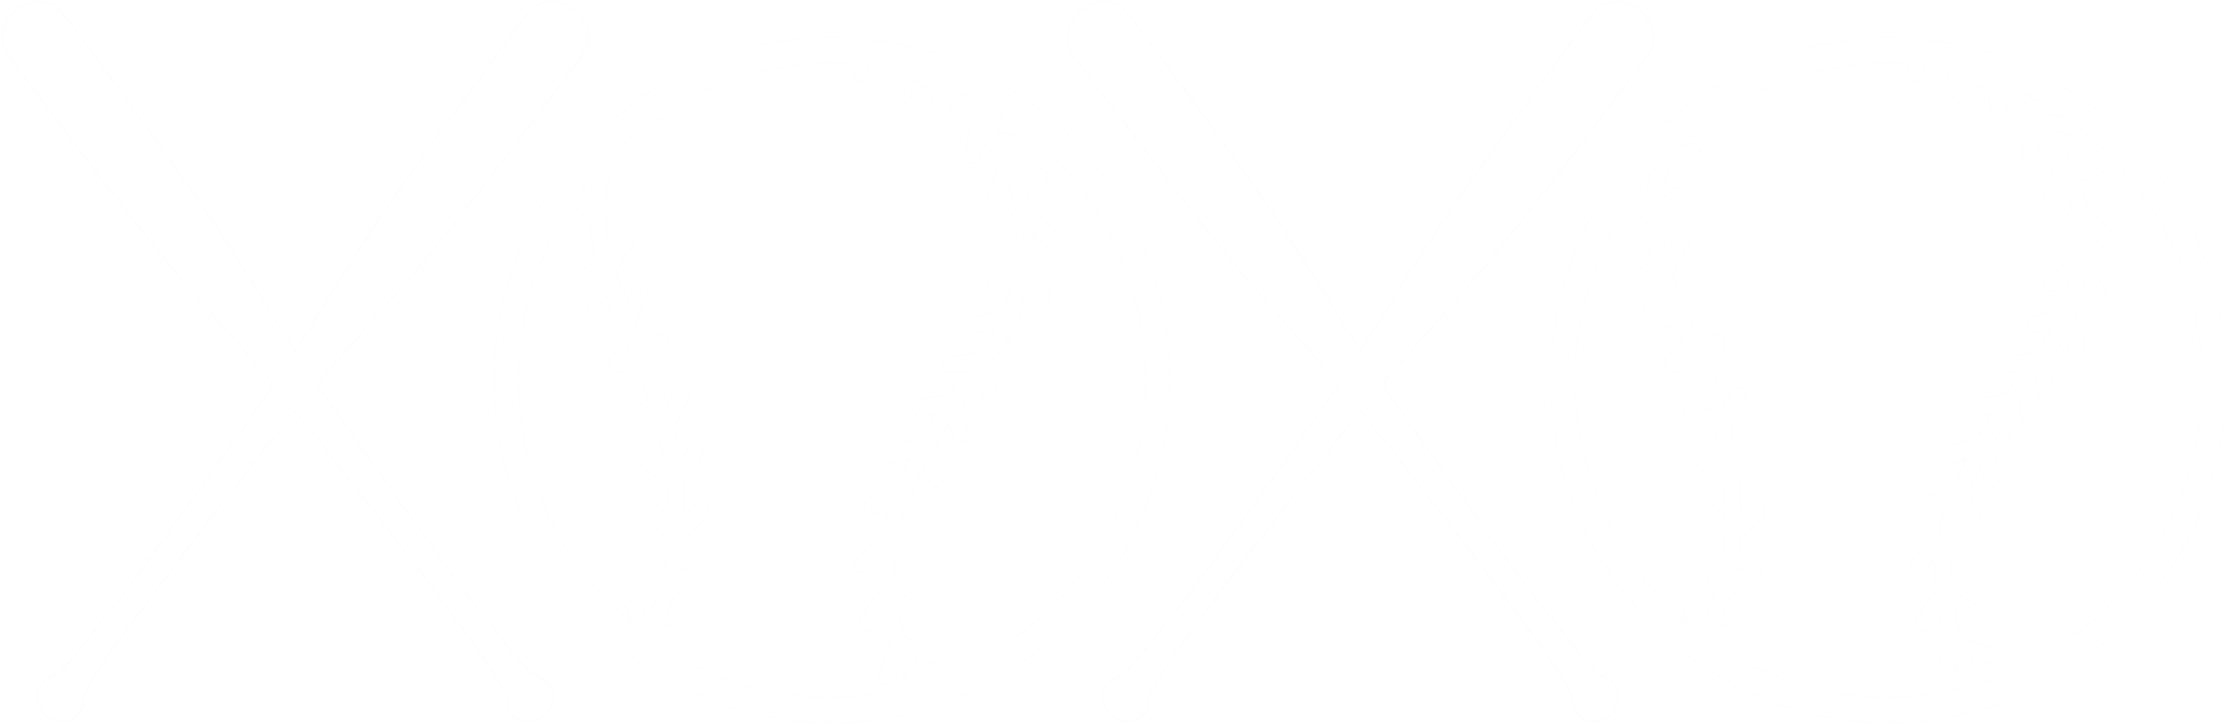 XOXO Baseball Softball